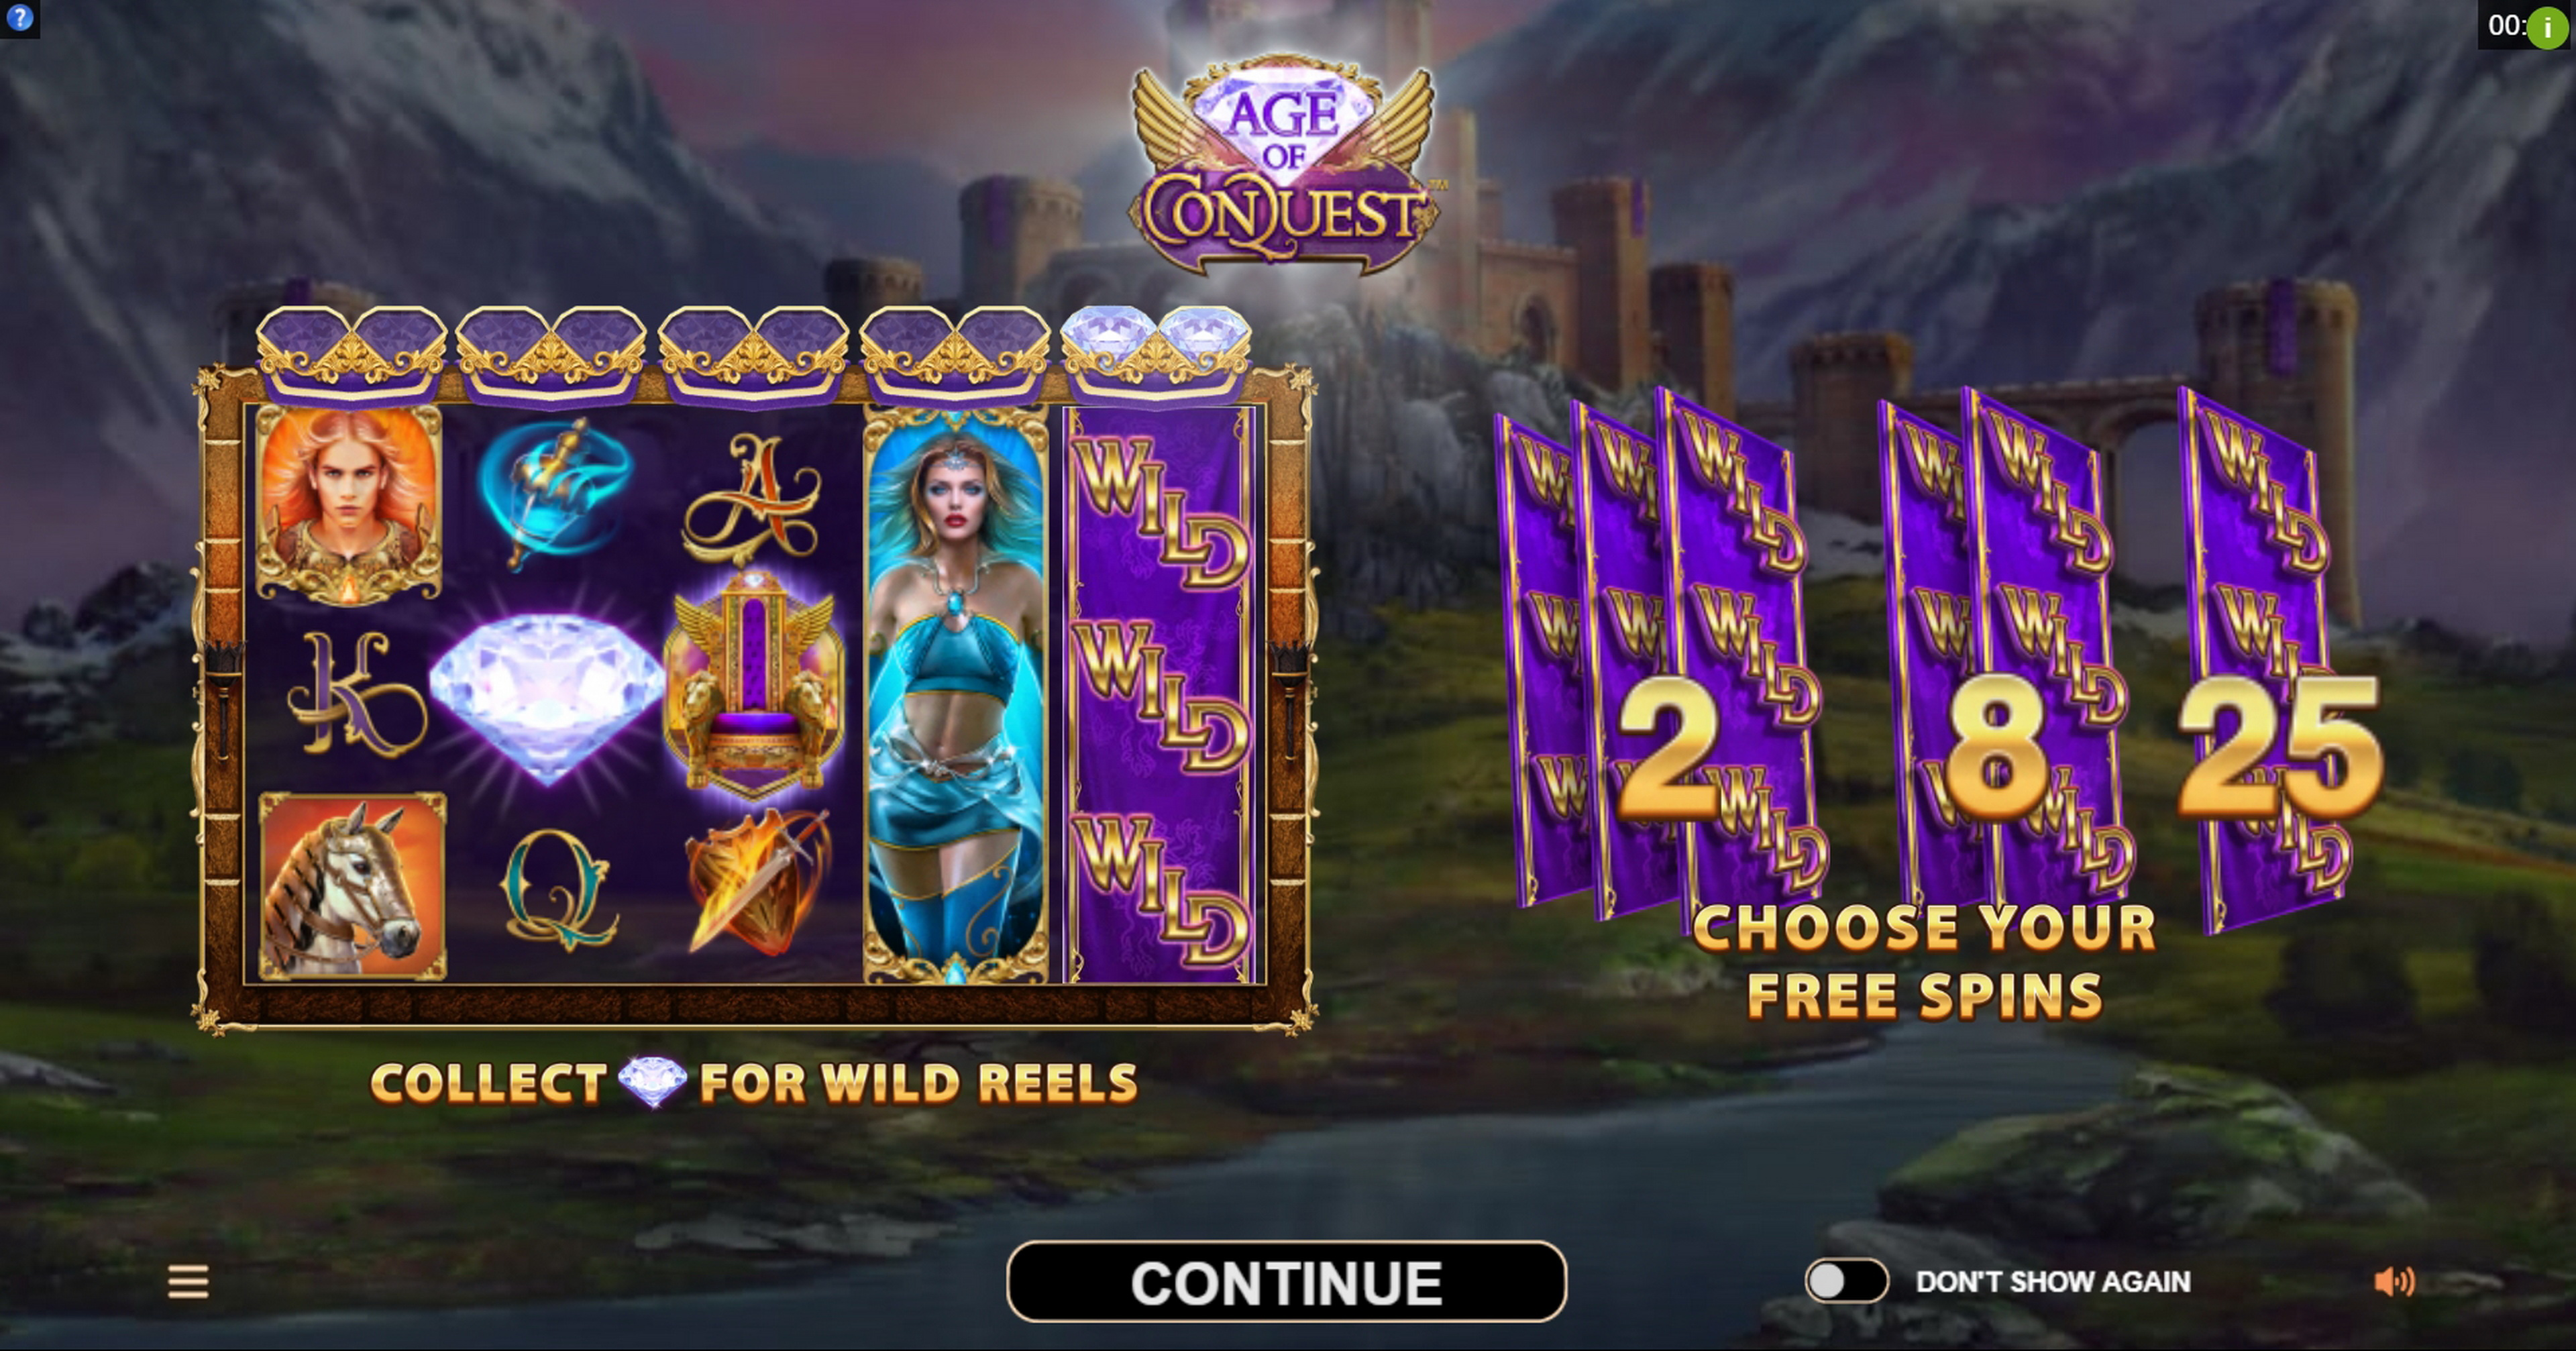 Play Age of Conquest Free Casino Slot Game by Neon Valley Studios